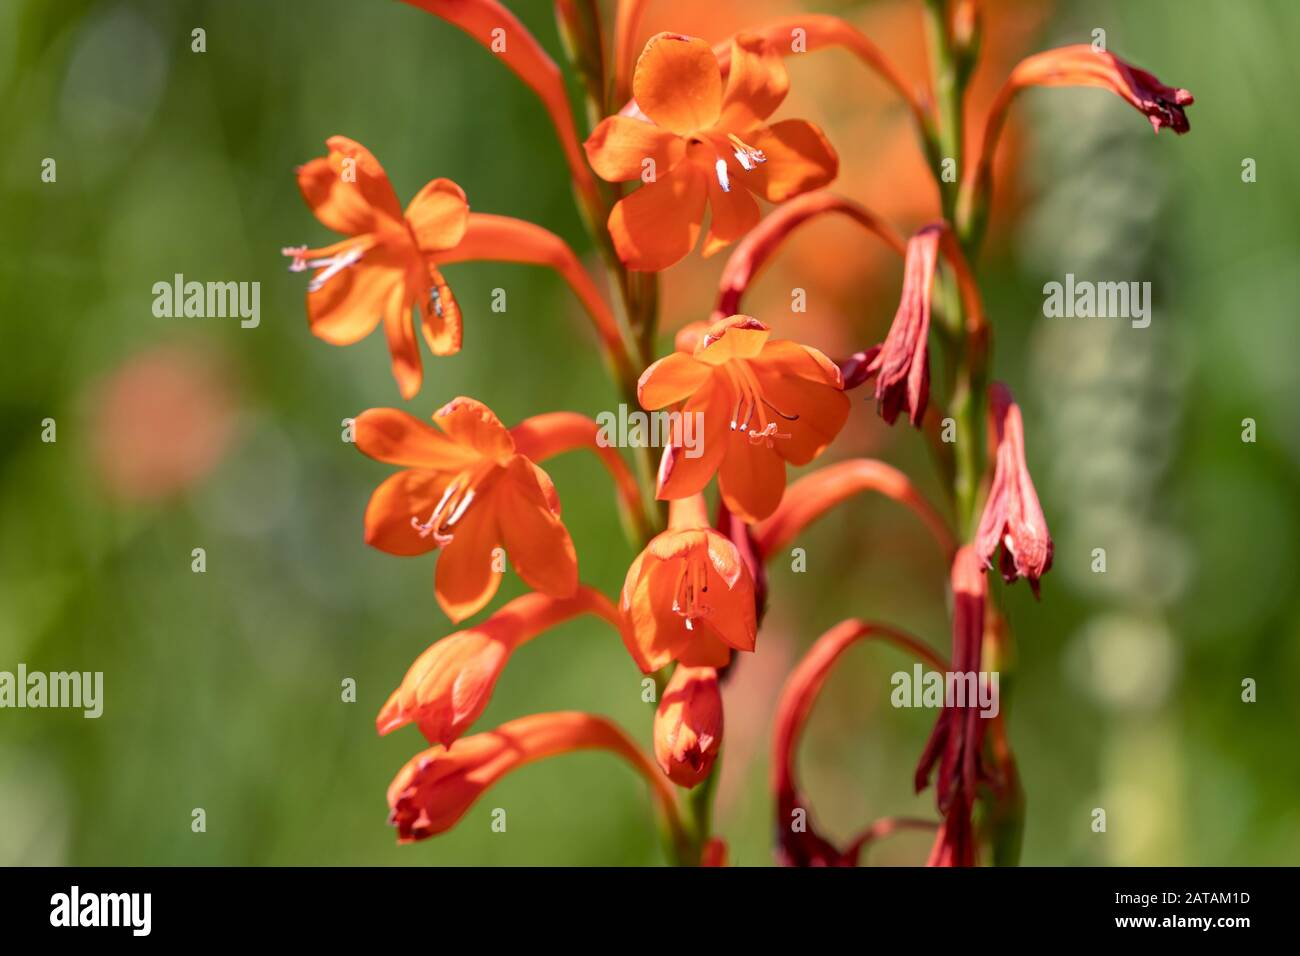 Watsonia Plant High Resolution Stock Photography and Images   Alamy